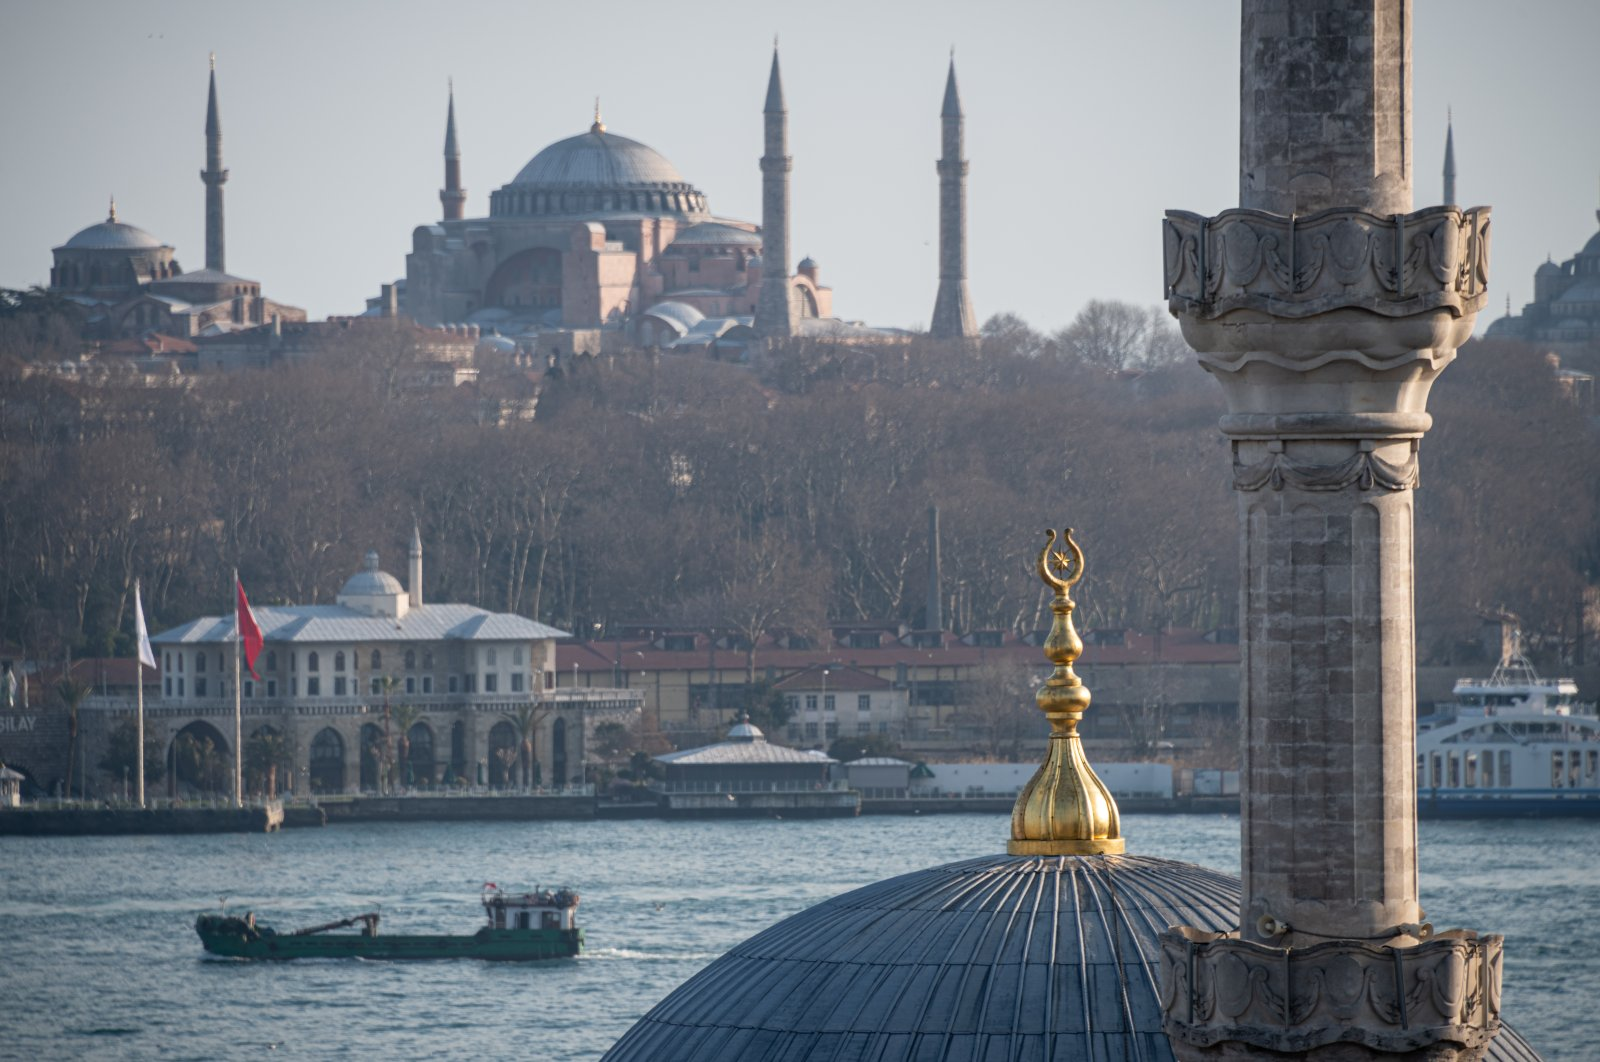 A view of Istanbul's historical peninsula showing Hagia Sophia Grand Mosque, Turkey, March 15, 2021. (Photo by Getty Images)